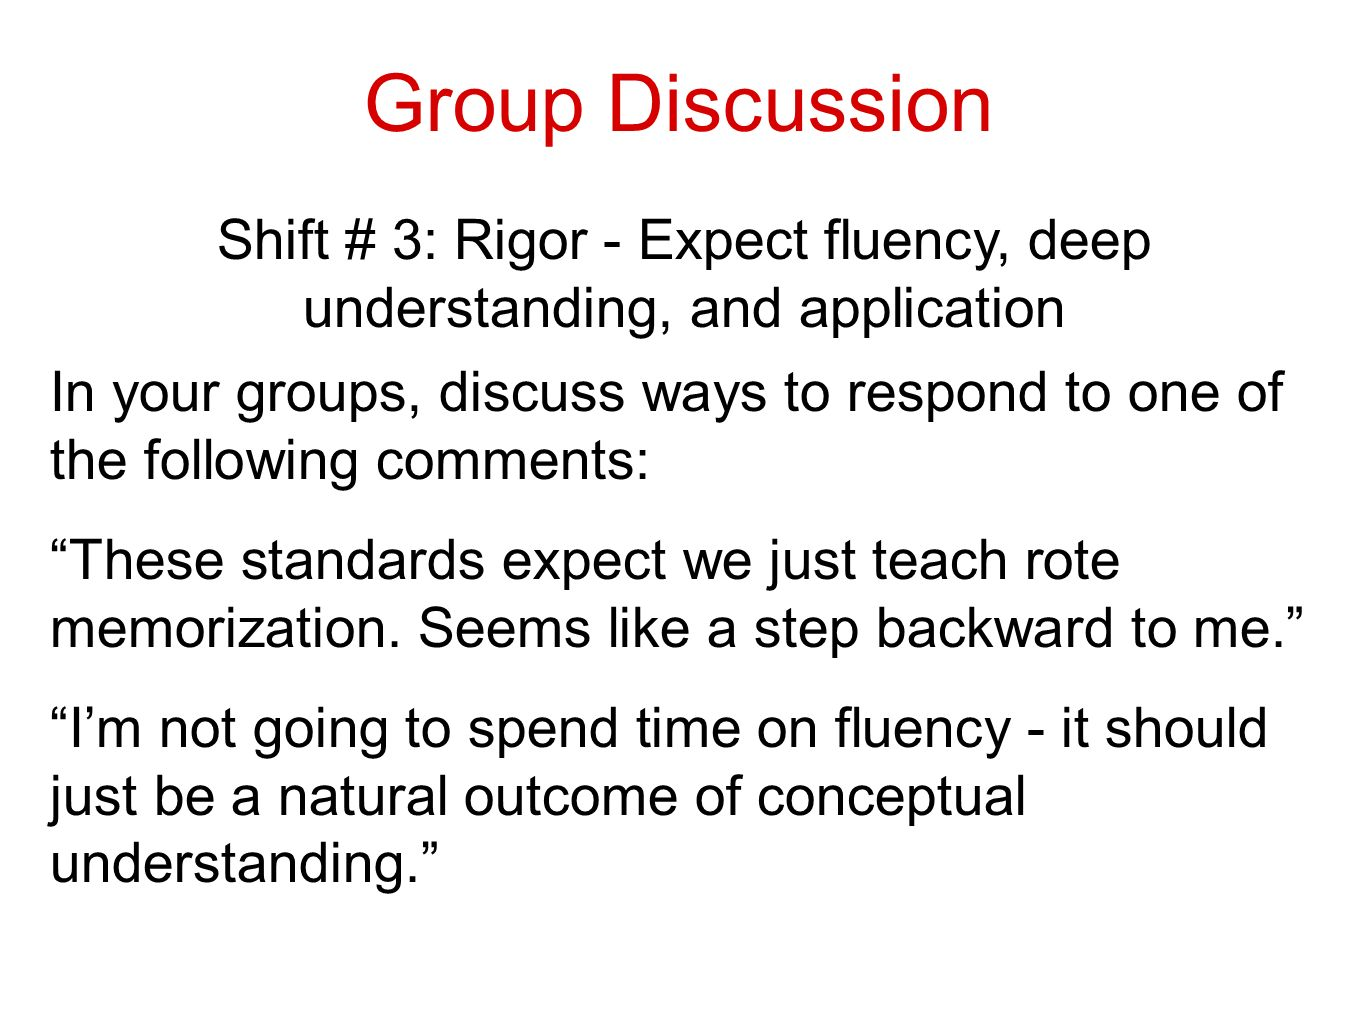 Shift # 3: Rigor - Expect fluency, deep understanding, and application